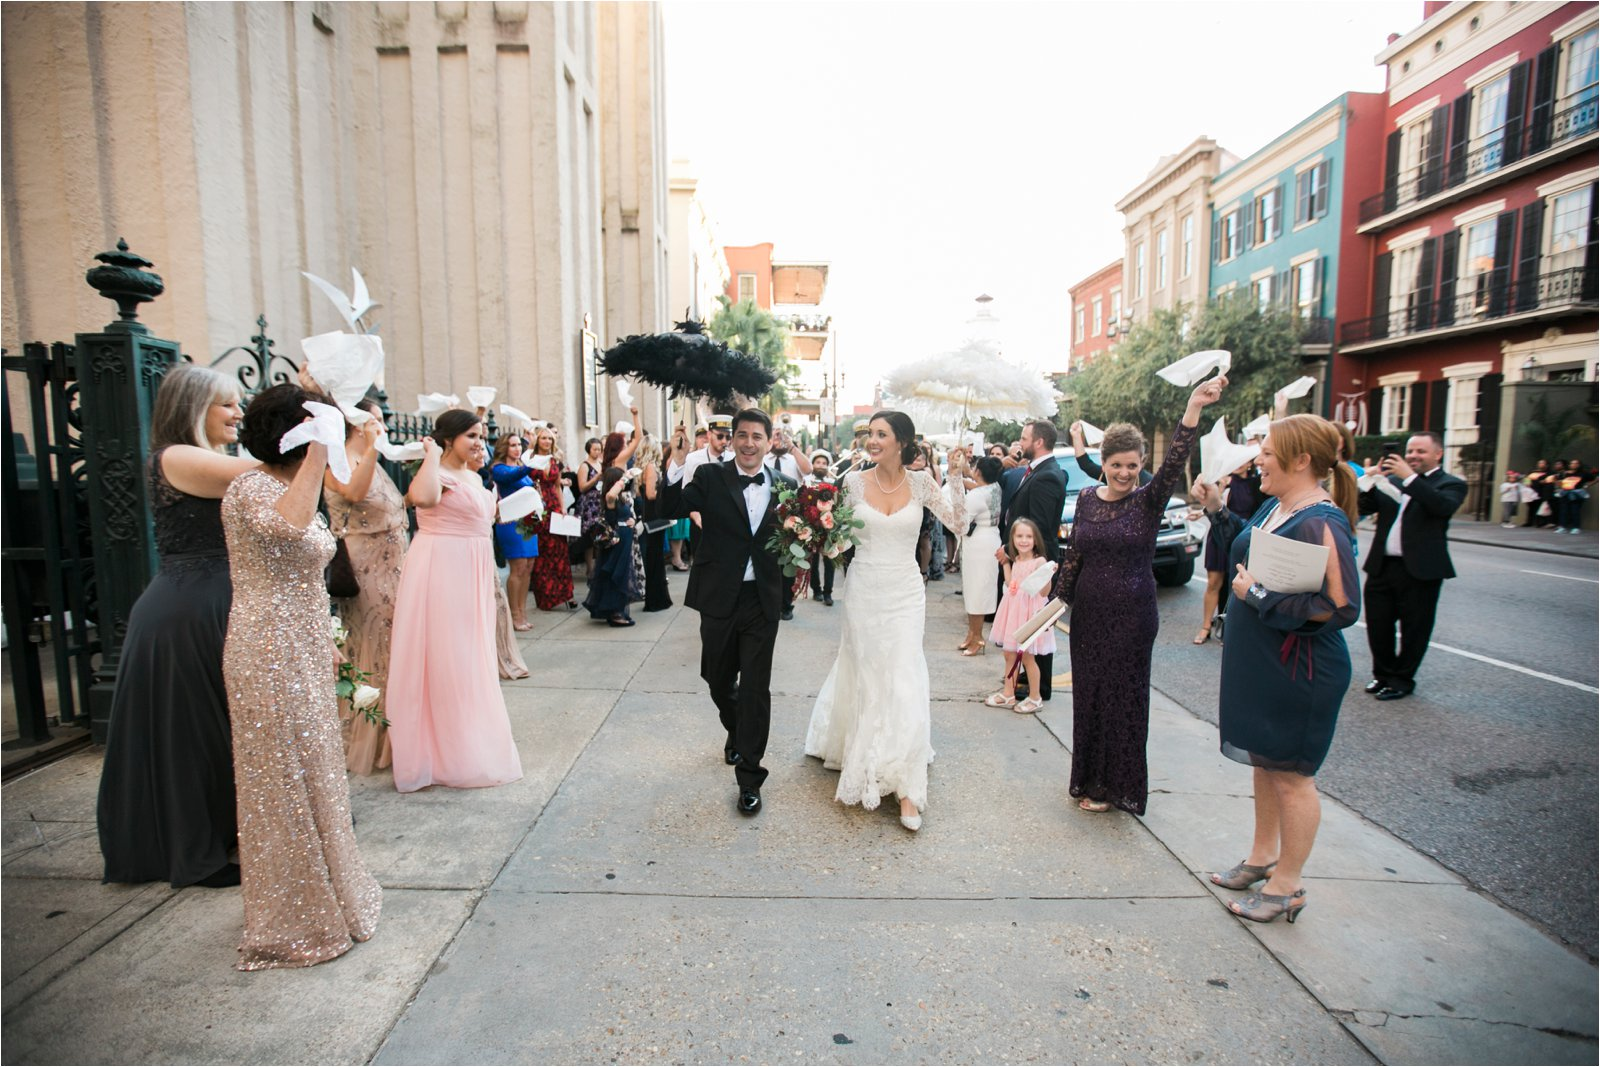 043_New Orleans wedding photographer.jpg